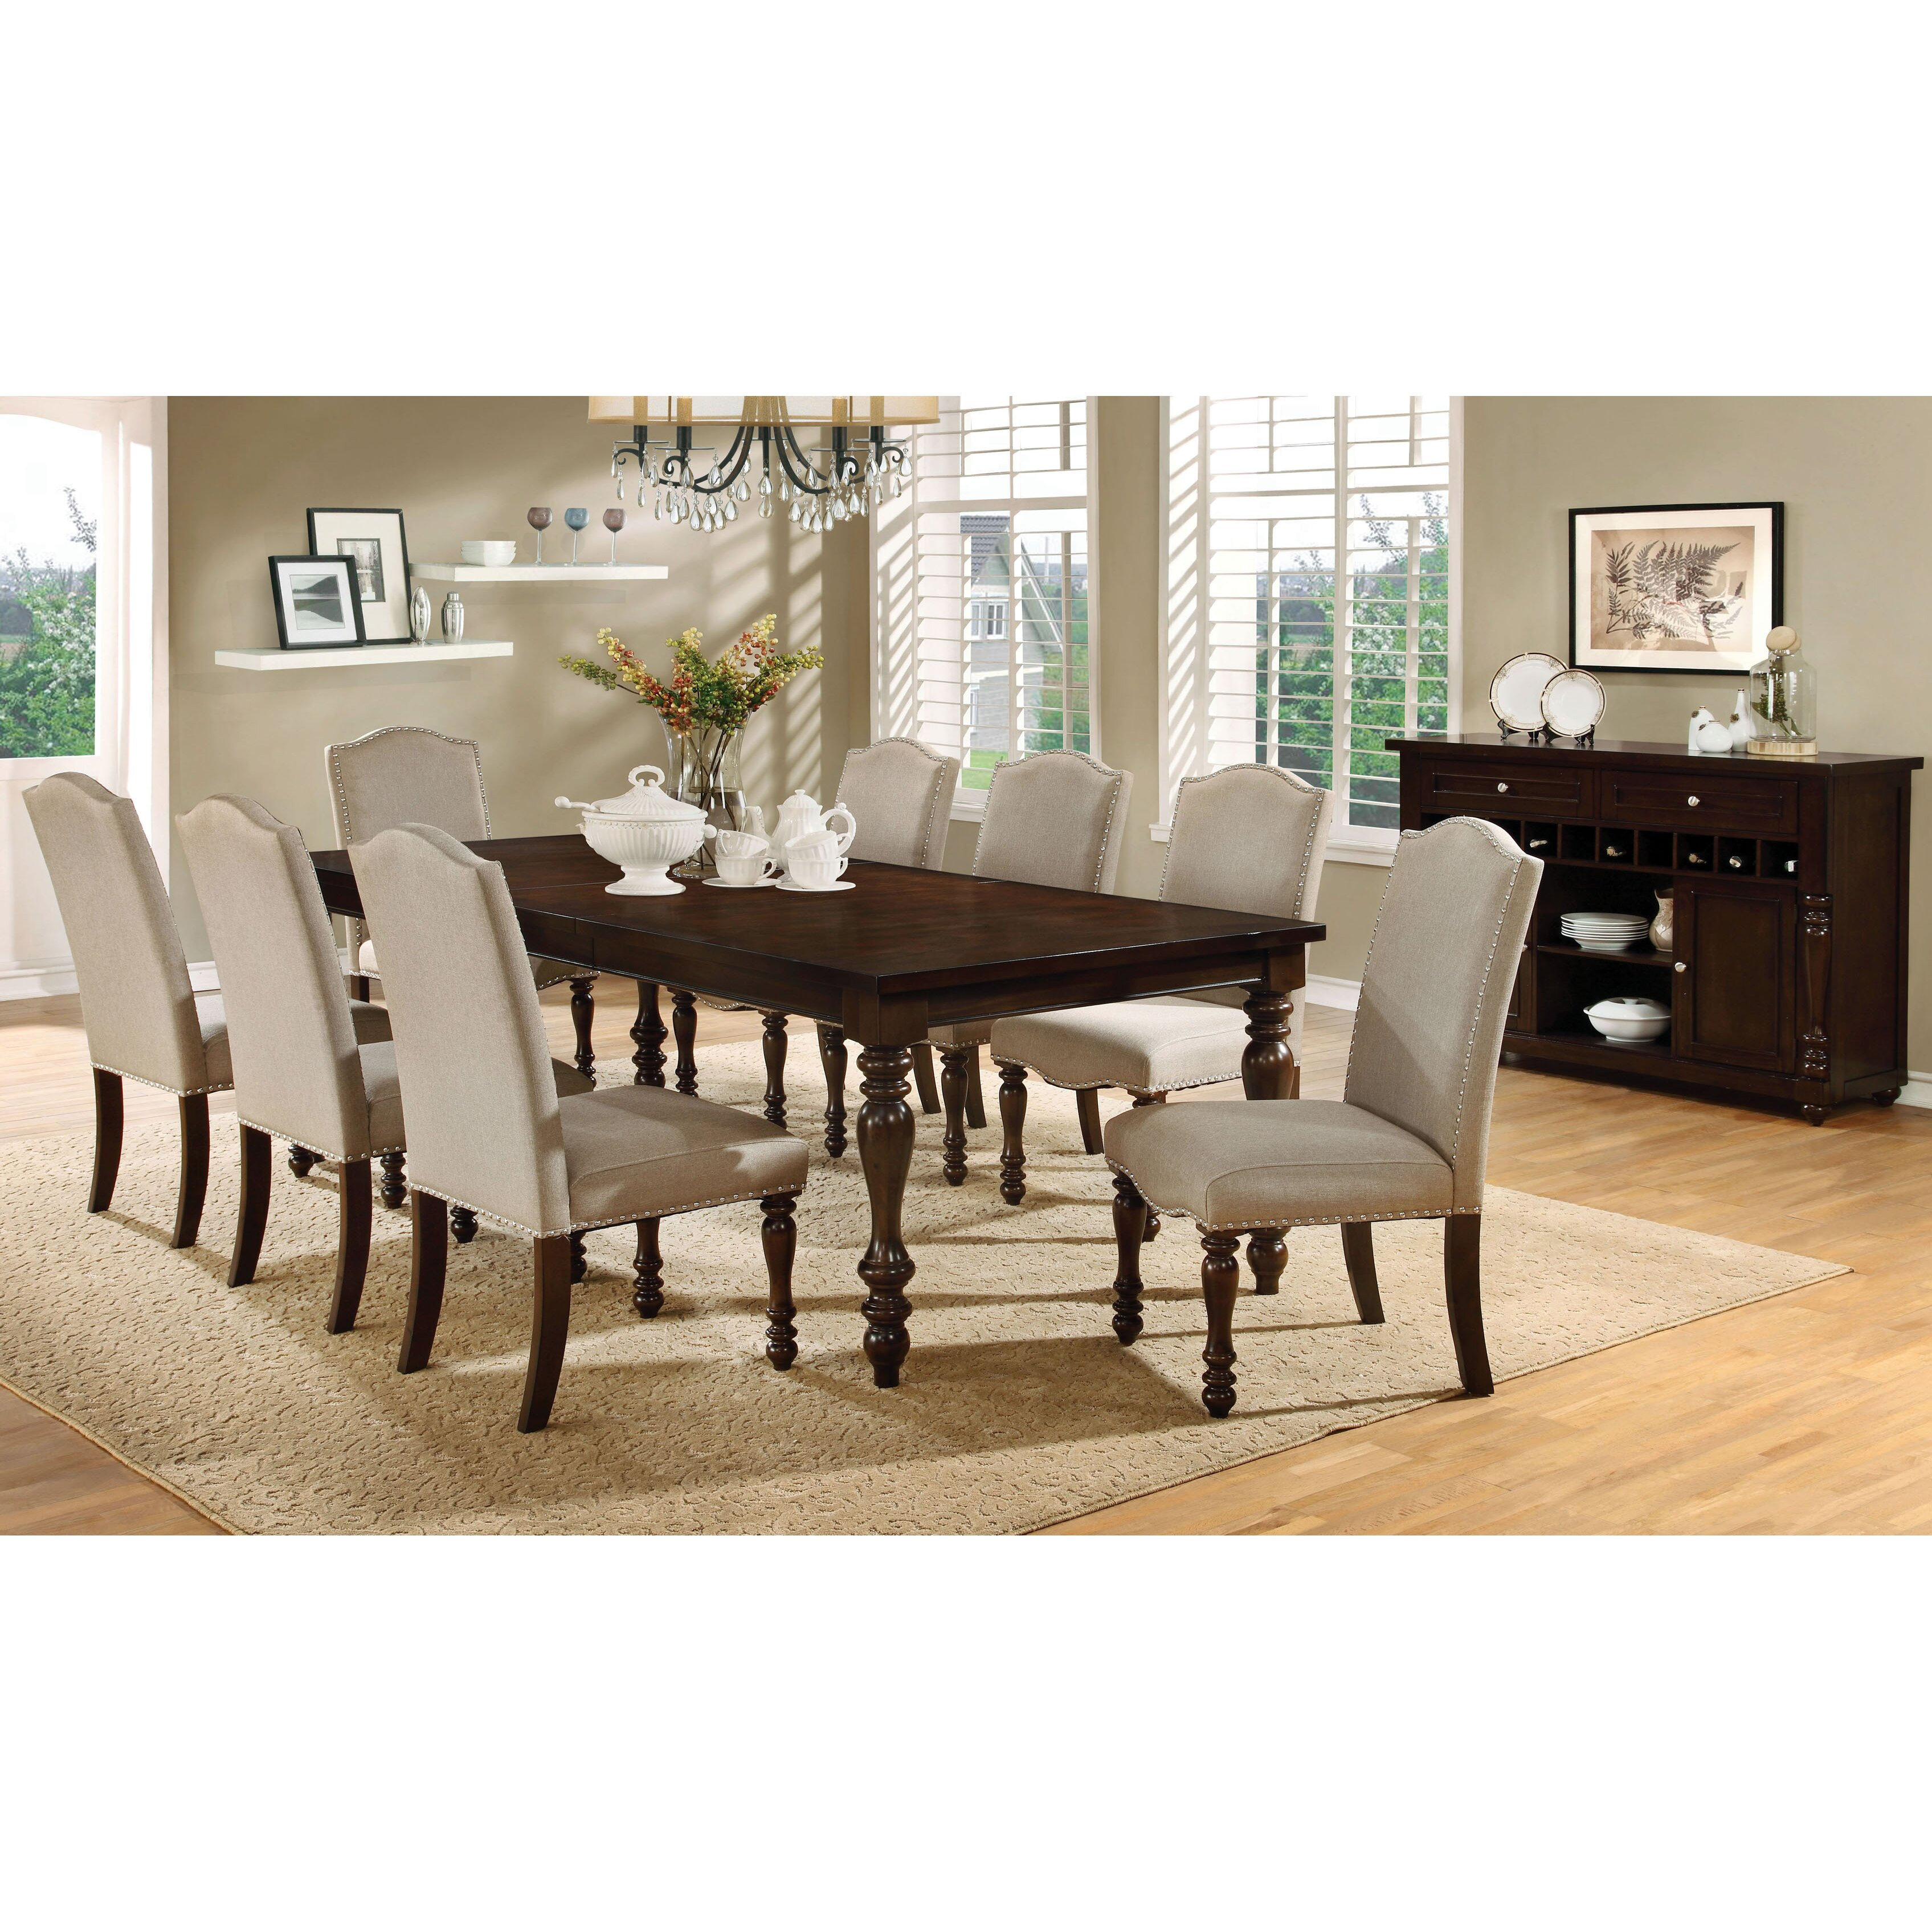 Dining Table Co Darby Home Co Cato Extendable Dining Table Reviews Wayfair